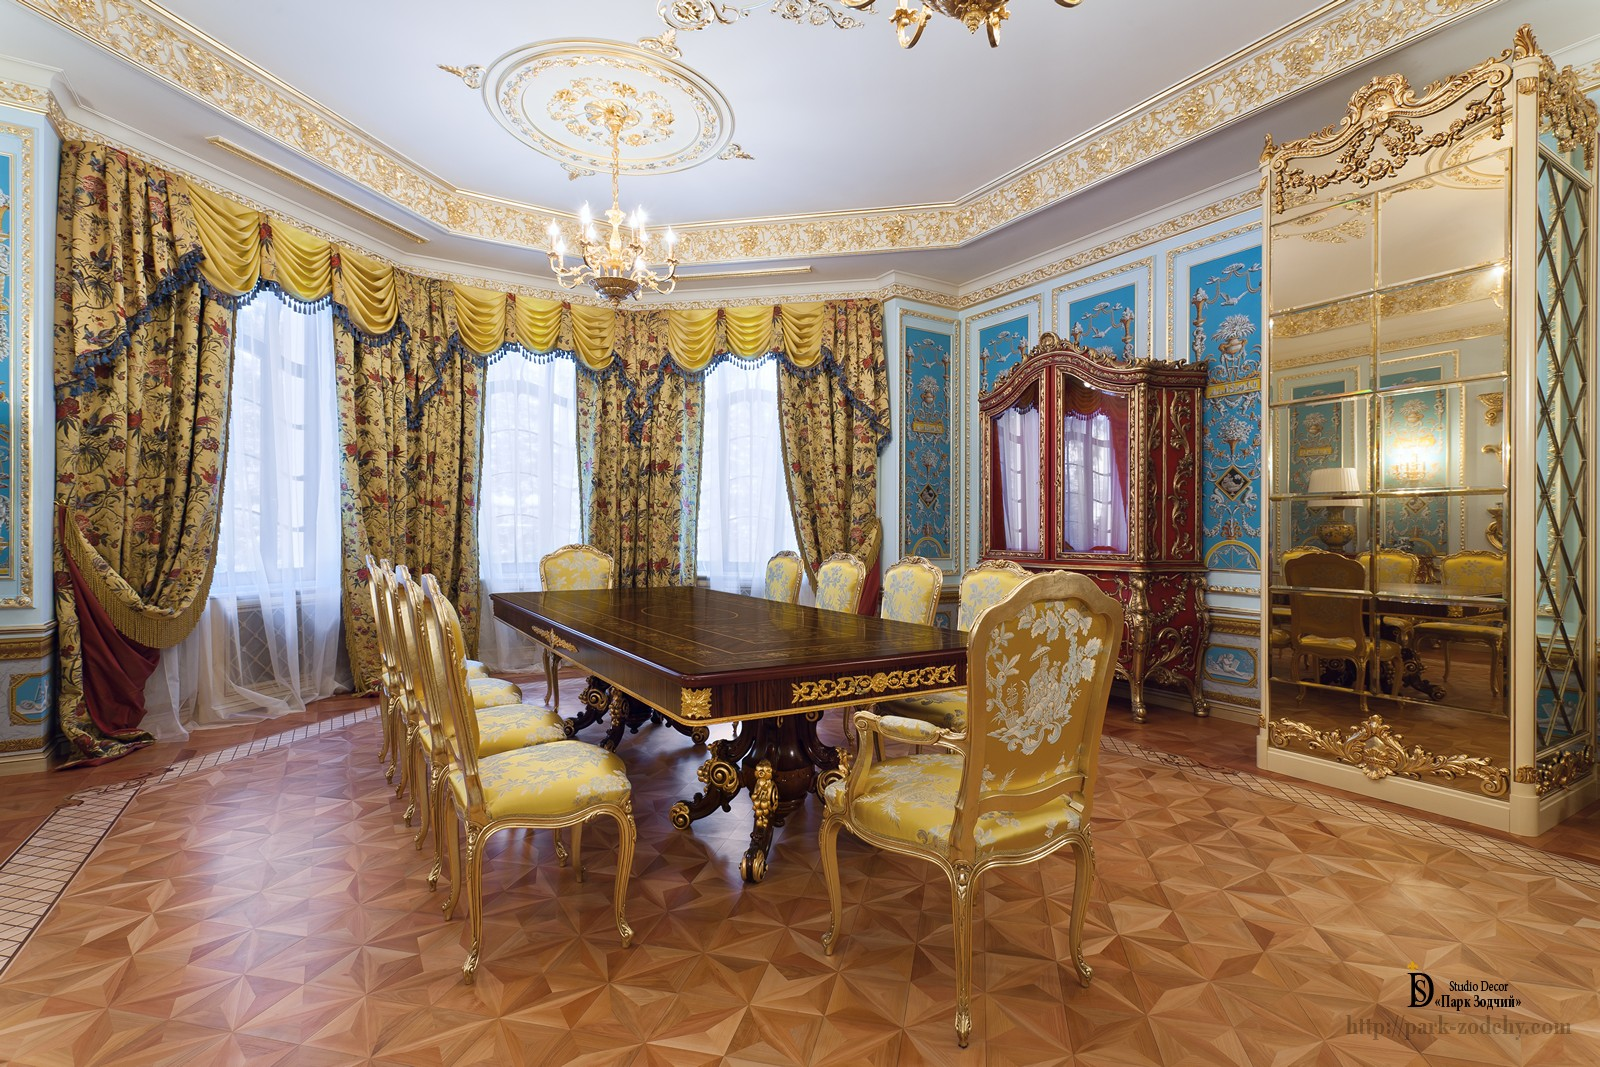 Nightingale in the Baroque style with gilded moldings and parquet